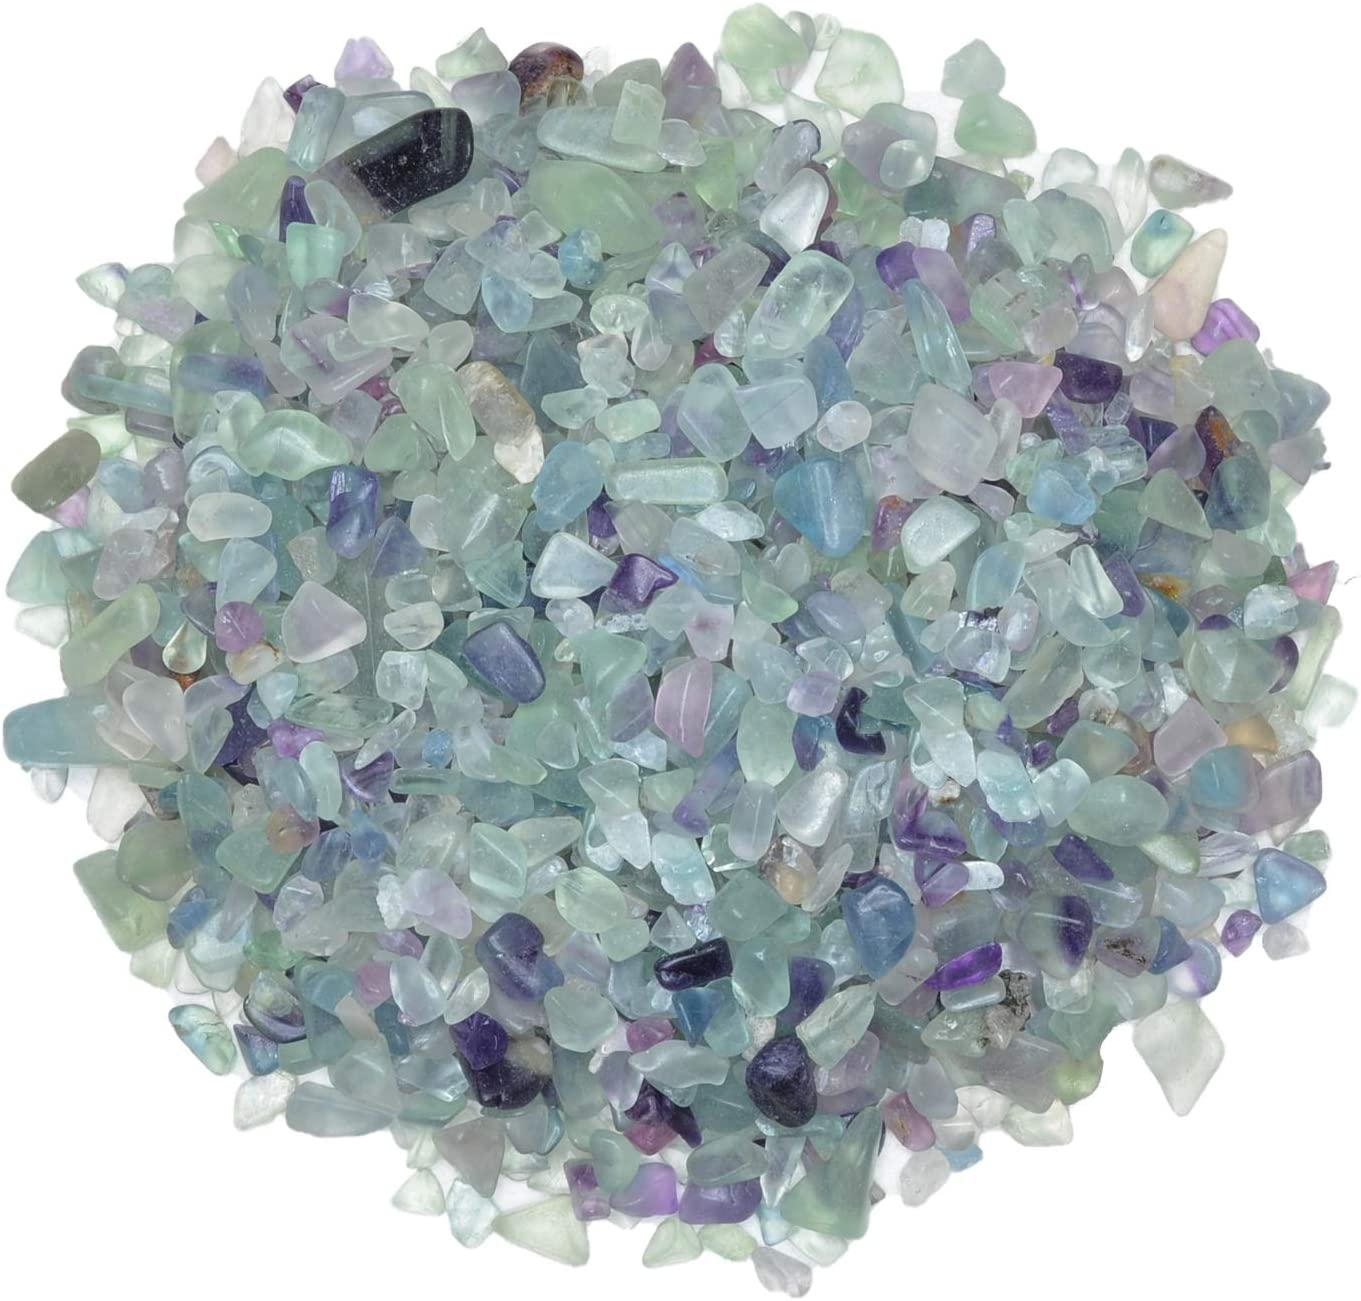 Hypnotic Excellence Elegant Gems: 18 lbs of Natural Rainbow Polished Rock Fluorite